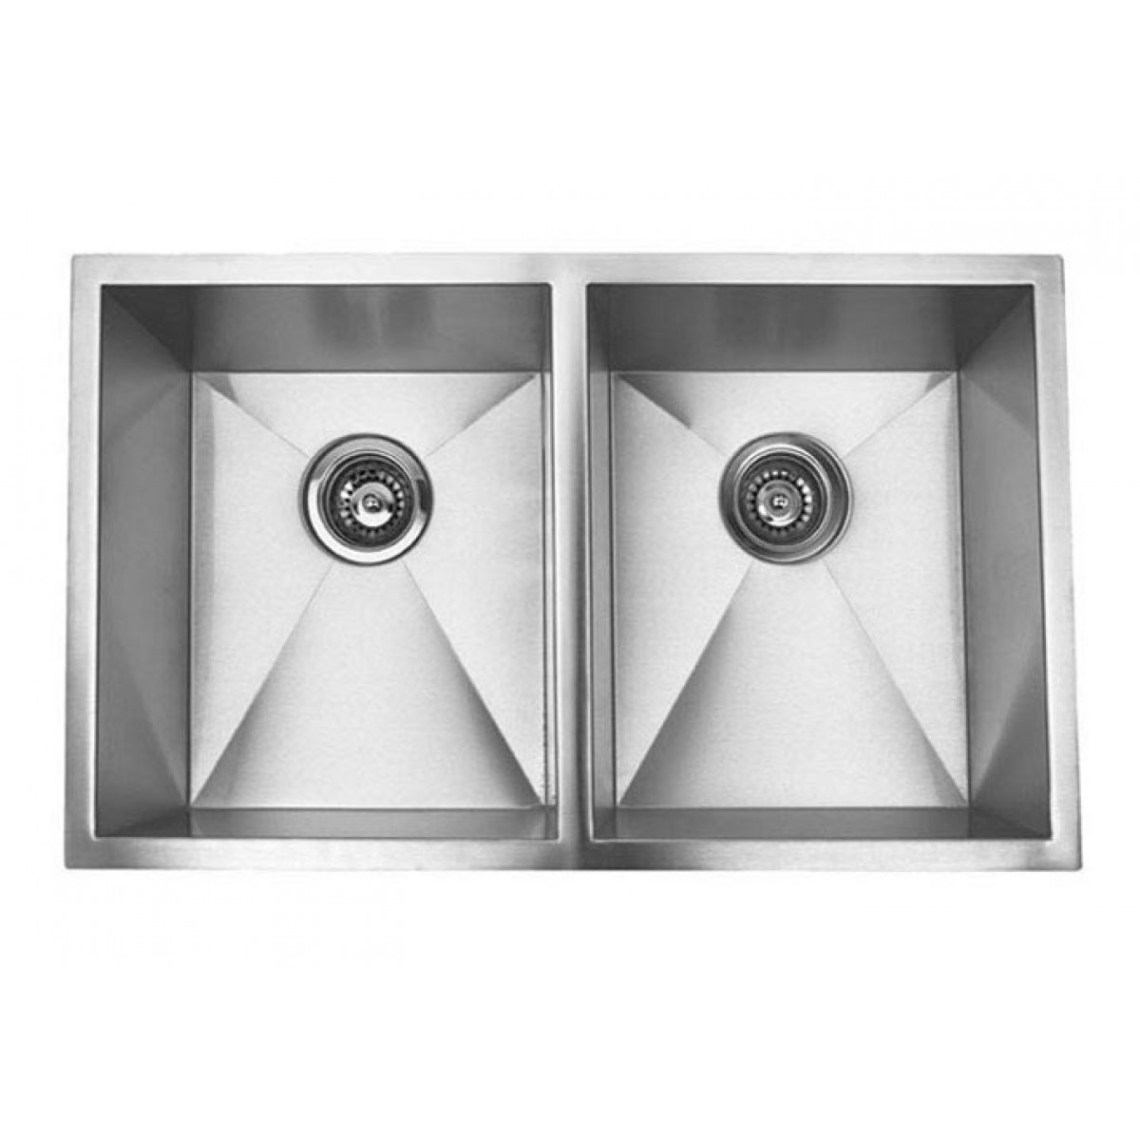 32 Inch Stainless Steel Undermount 50/50 Double Bowl ...